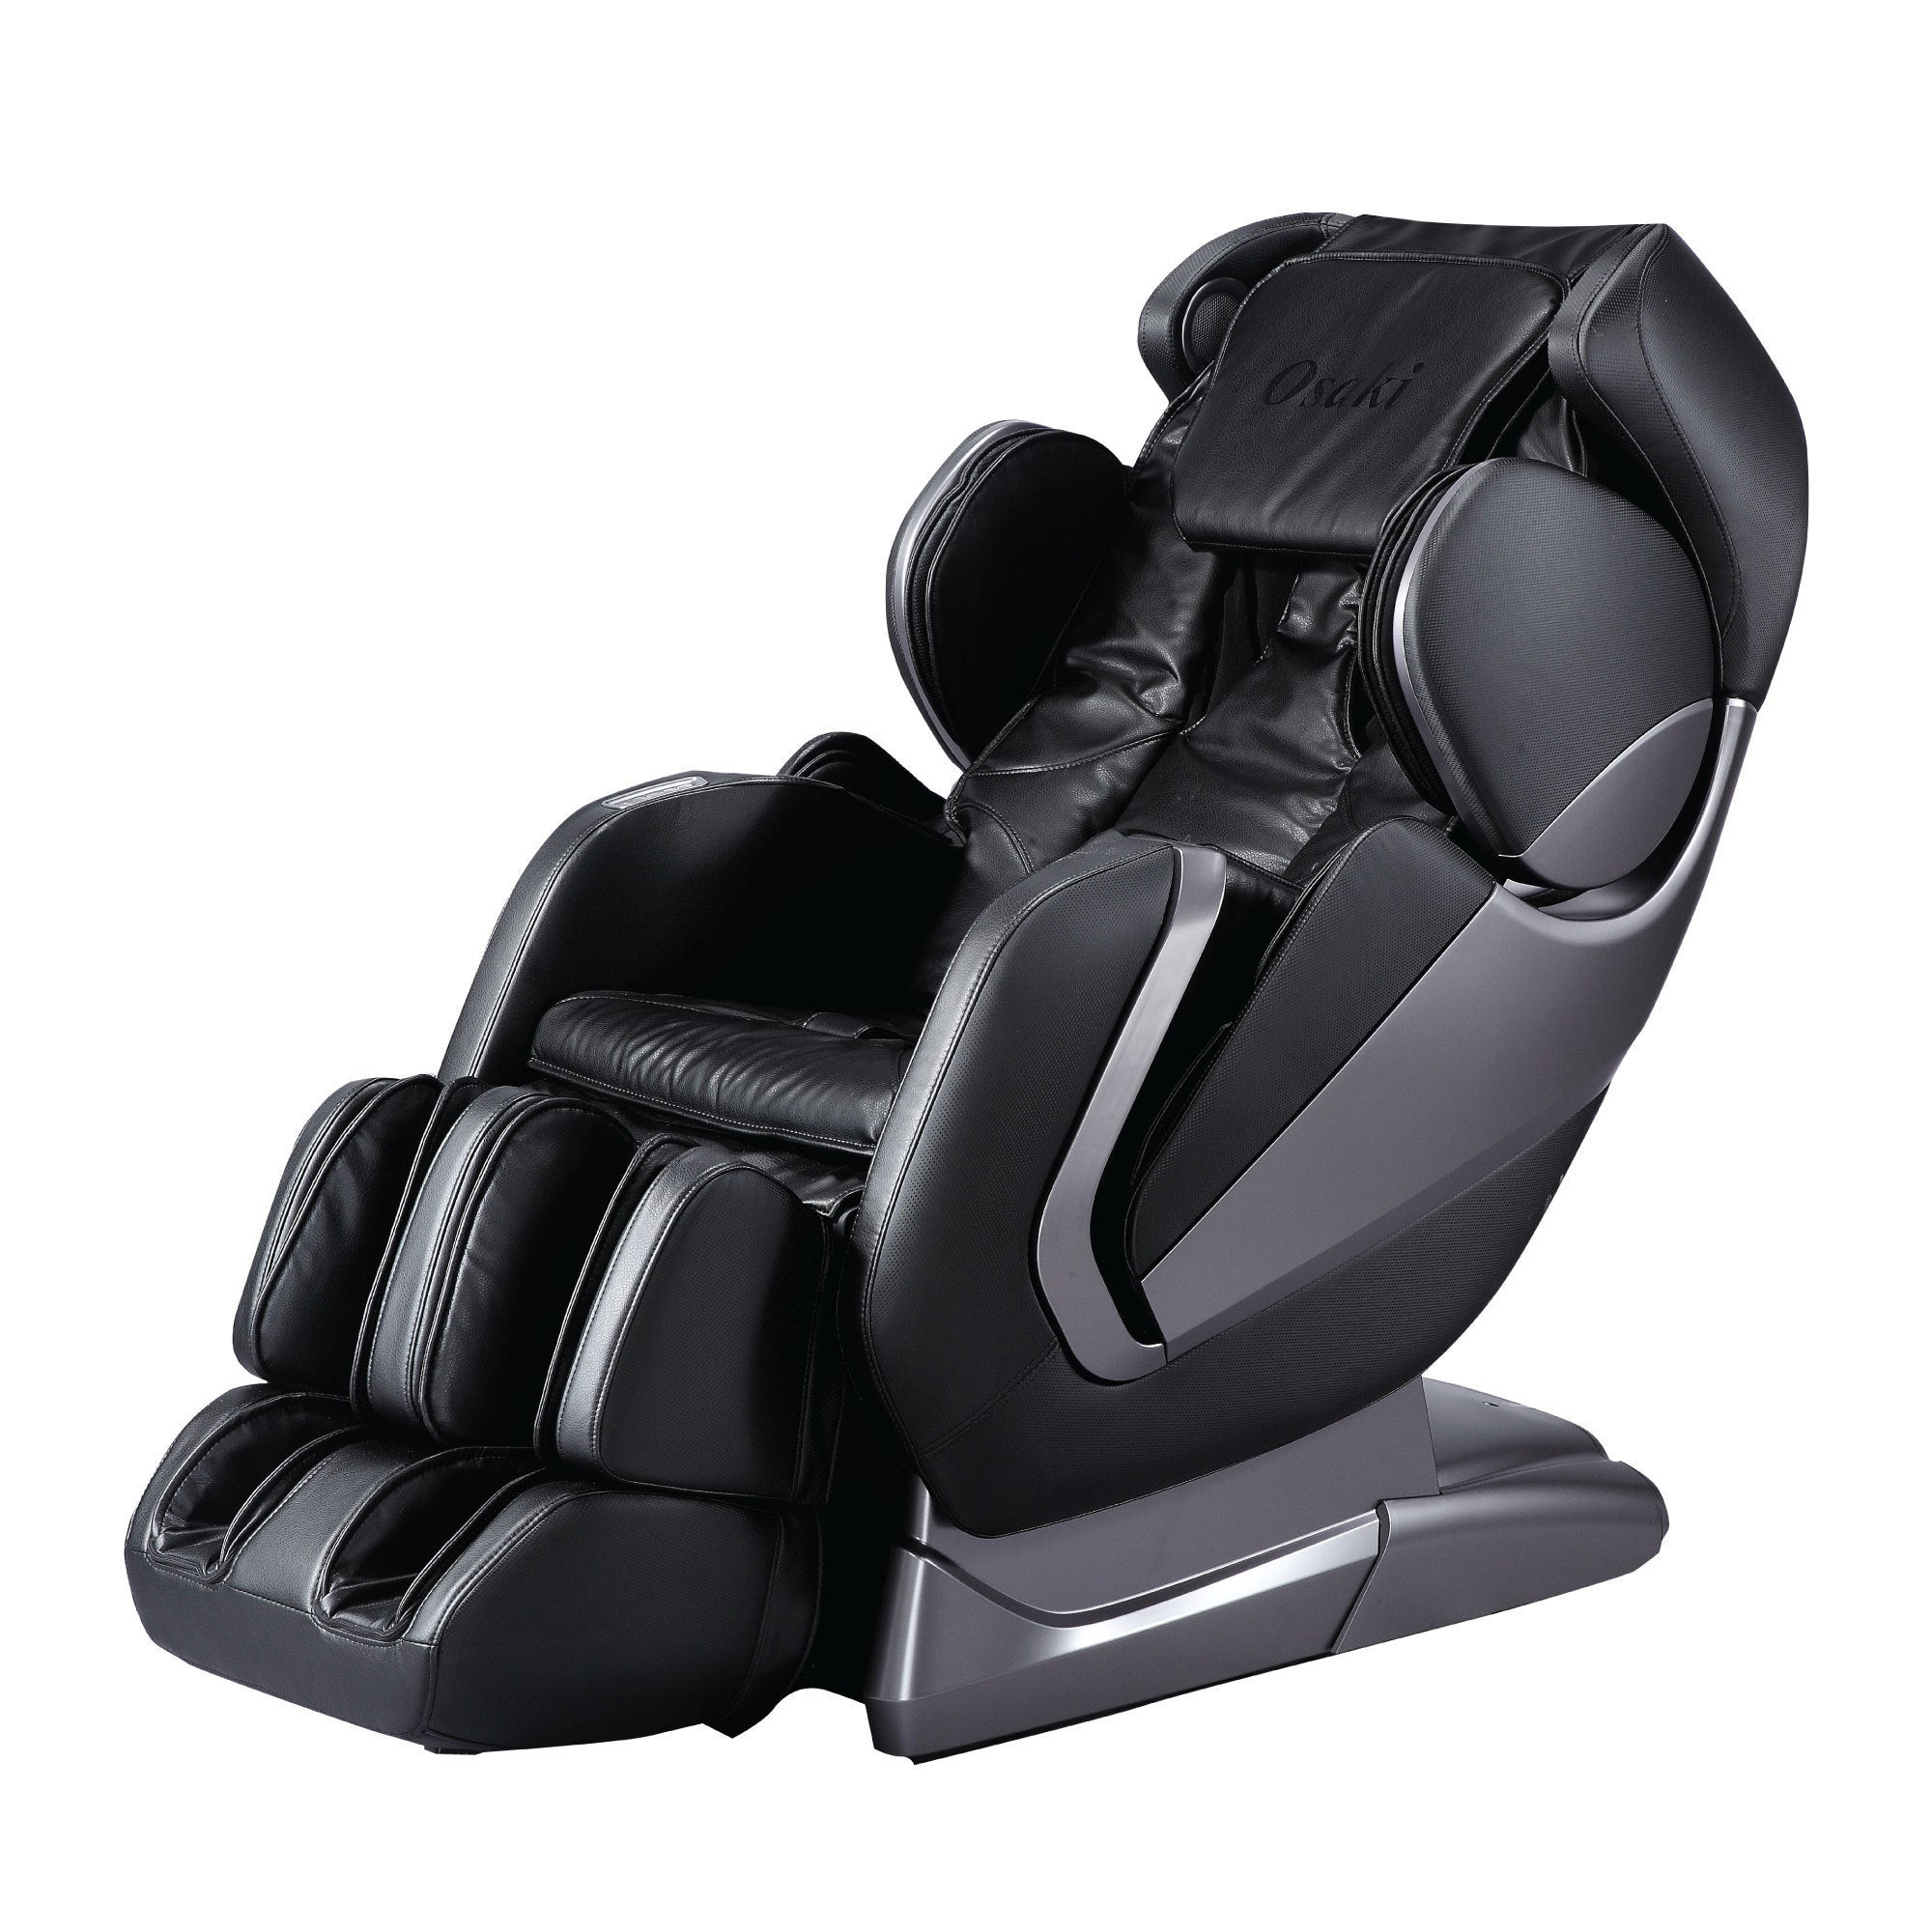 leather foxhunter chair cinema swivel armchair var recliner massage bonded heat sofa electric cost itm